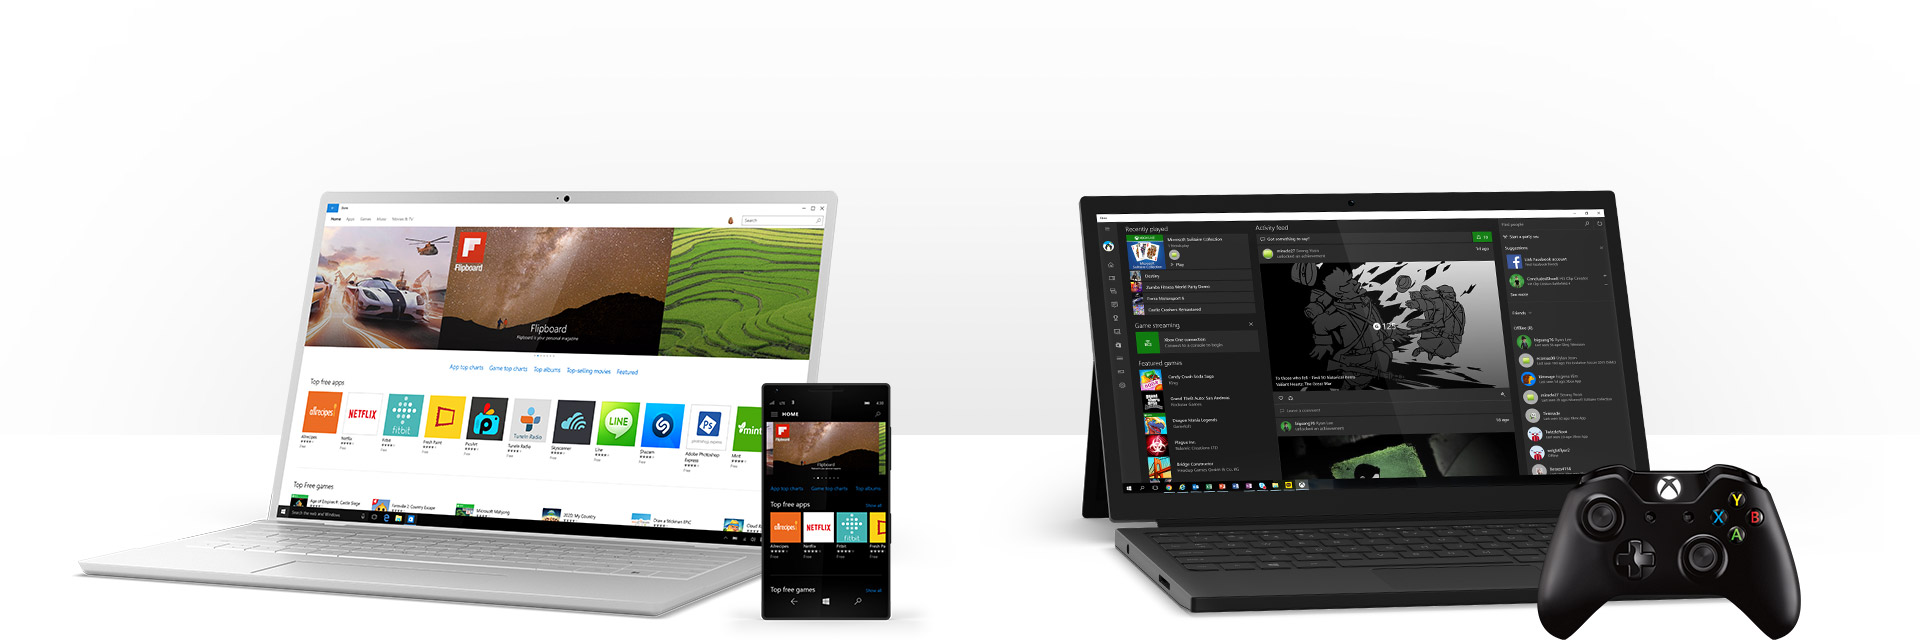 A Windows 10 PC showing apps in the Windows Store and a Windows 10 PC showing the Windows Xbox app and an Xbox controller